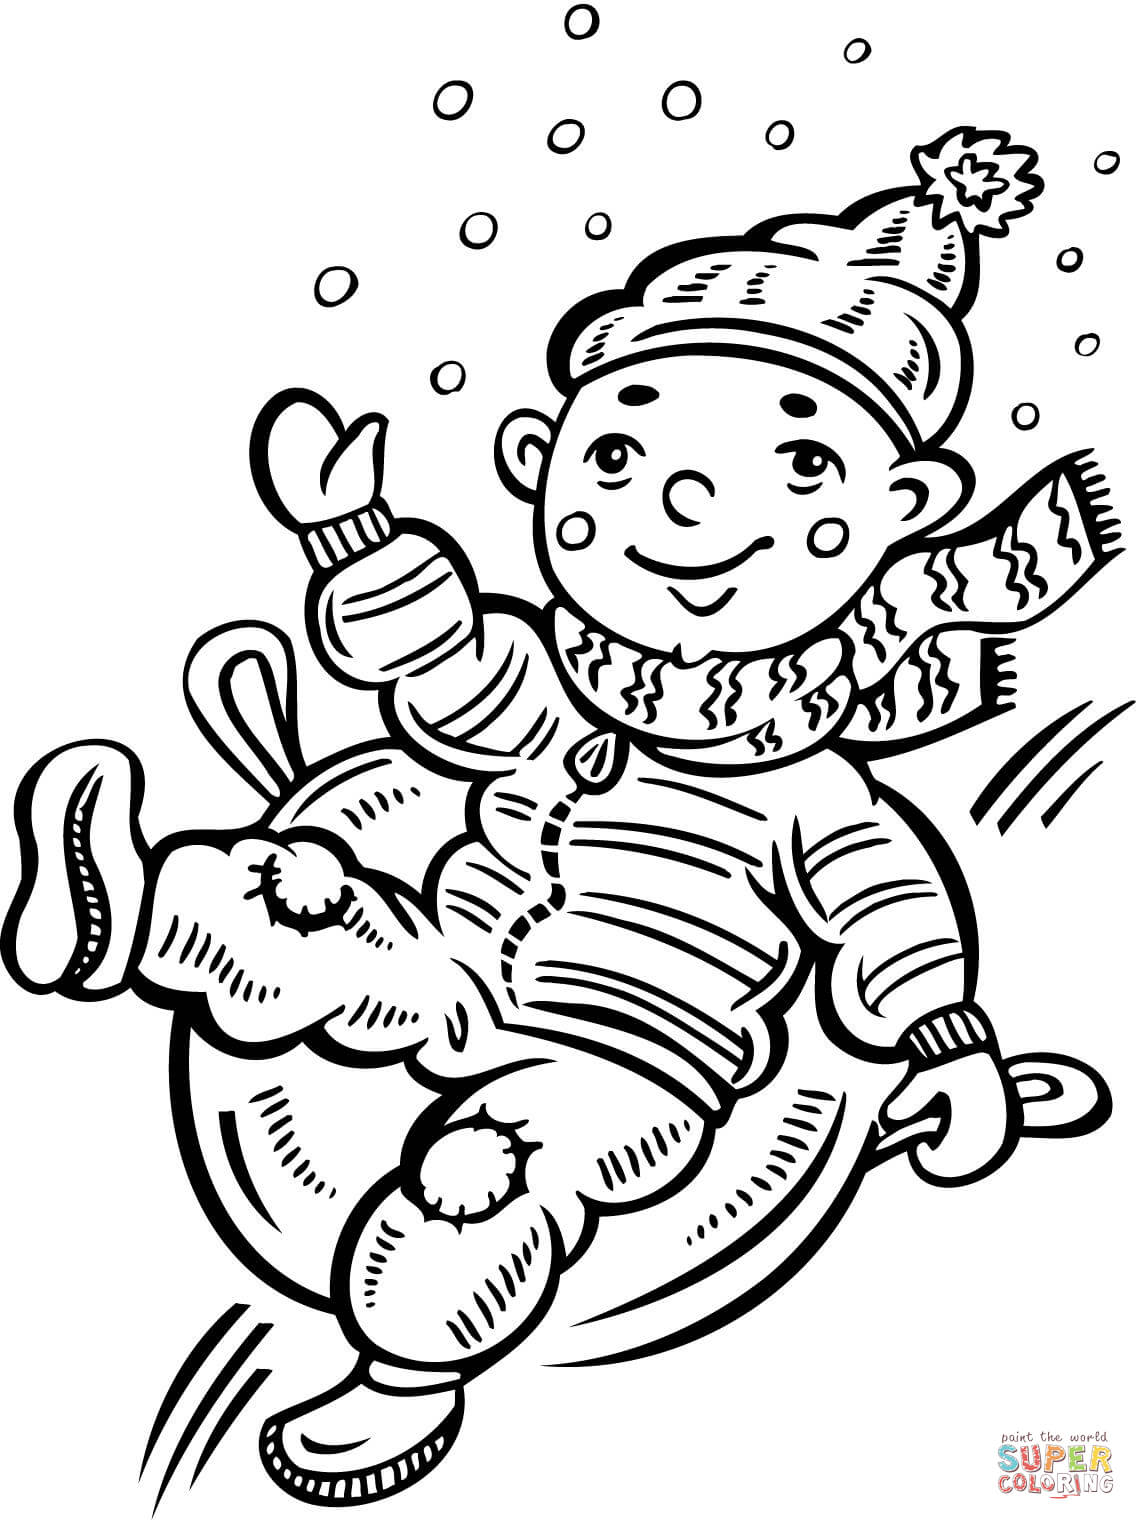 Child Sliding Down A Snow Covered Hill Coloring Page